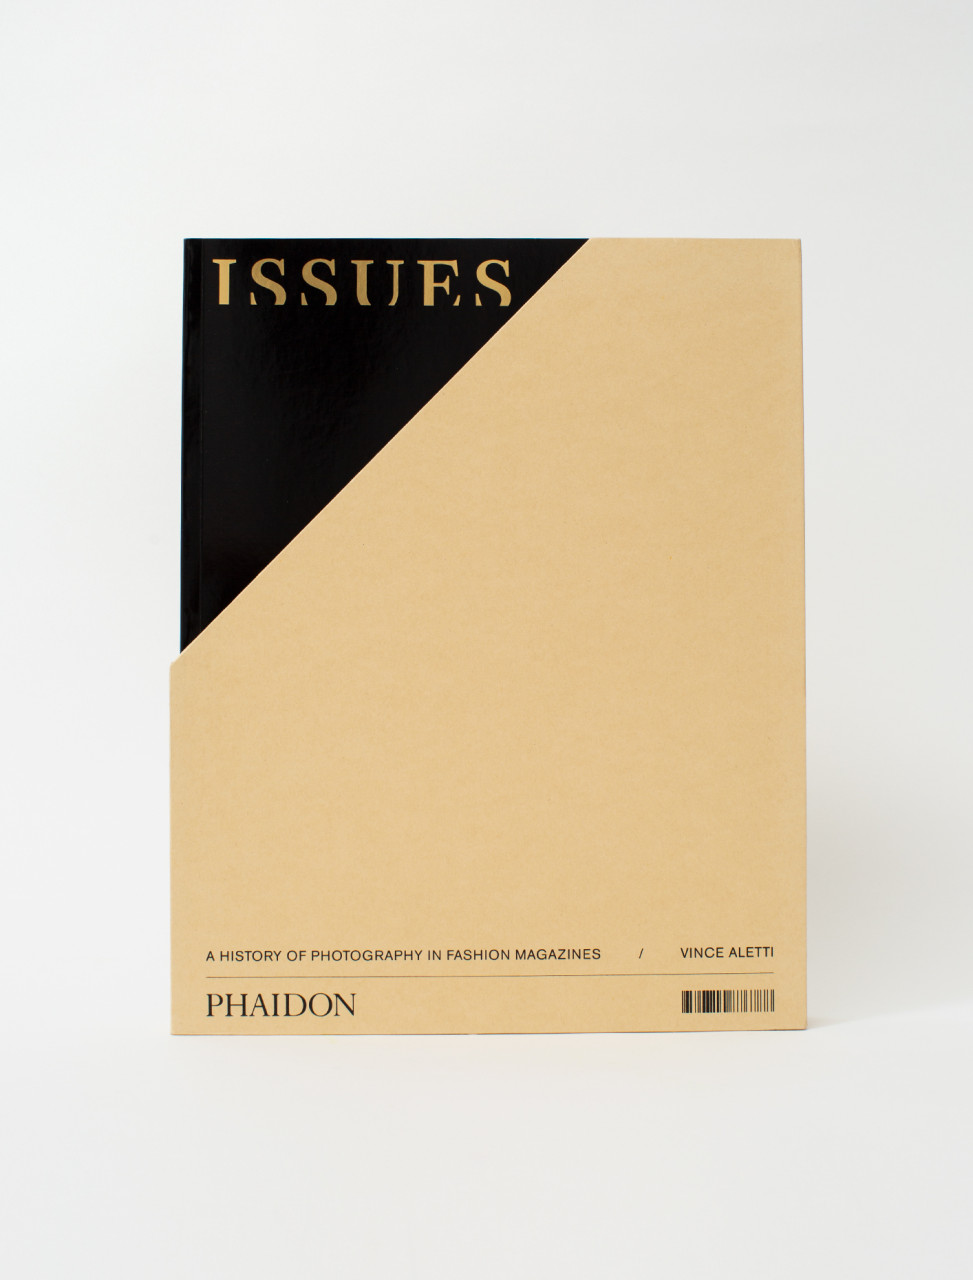 Issues - A History of Photography in Fashion Magazines